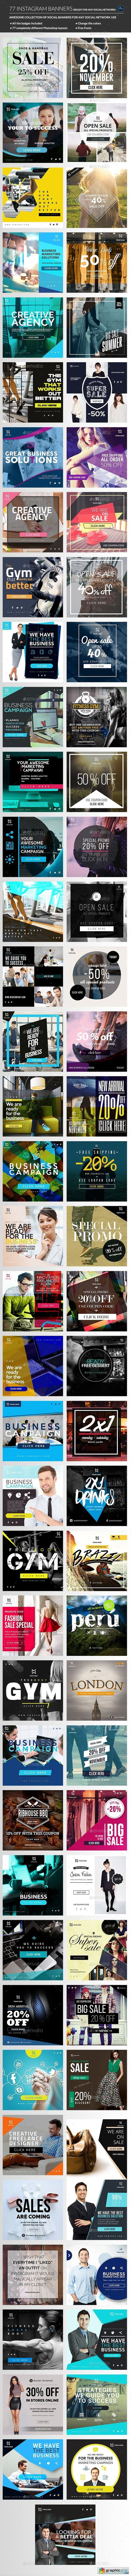 Instagram Banners Promo                                                                                                                                                                                 More: